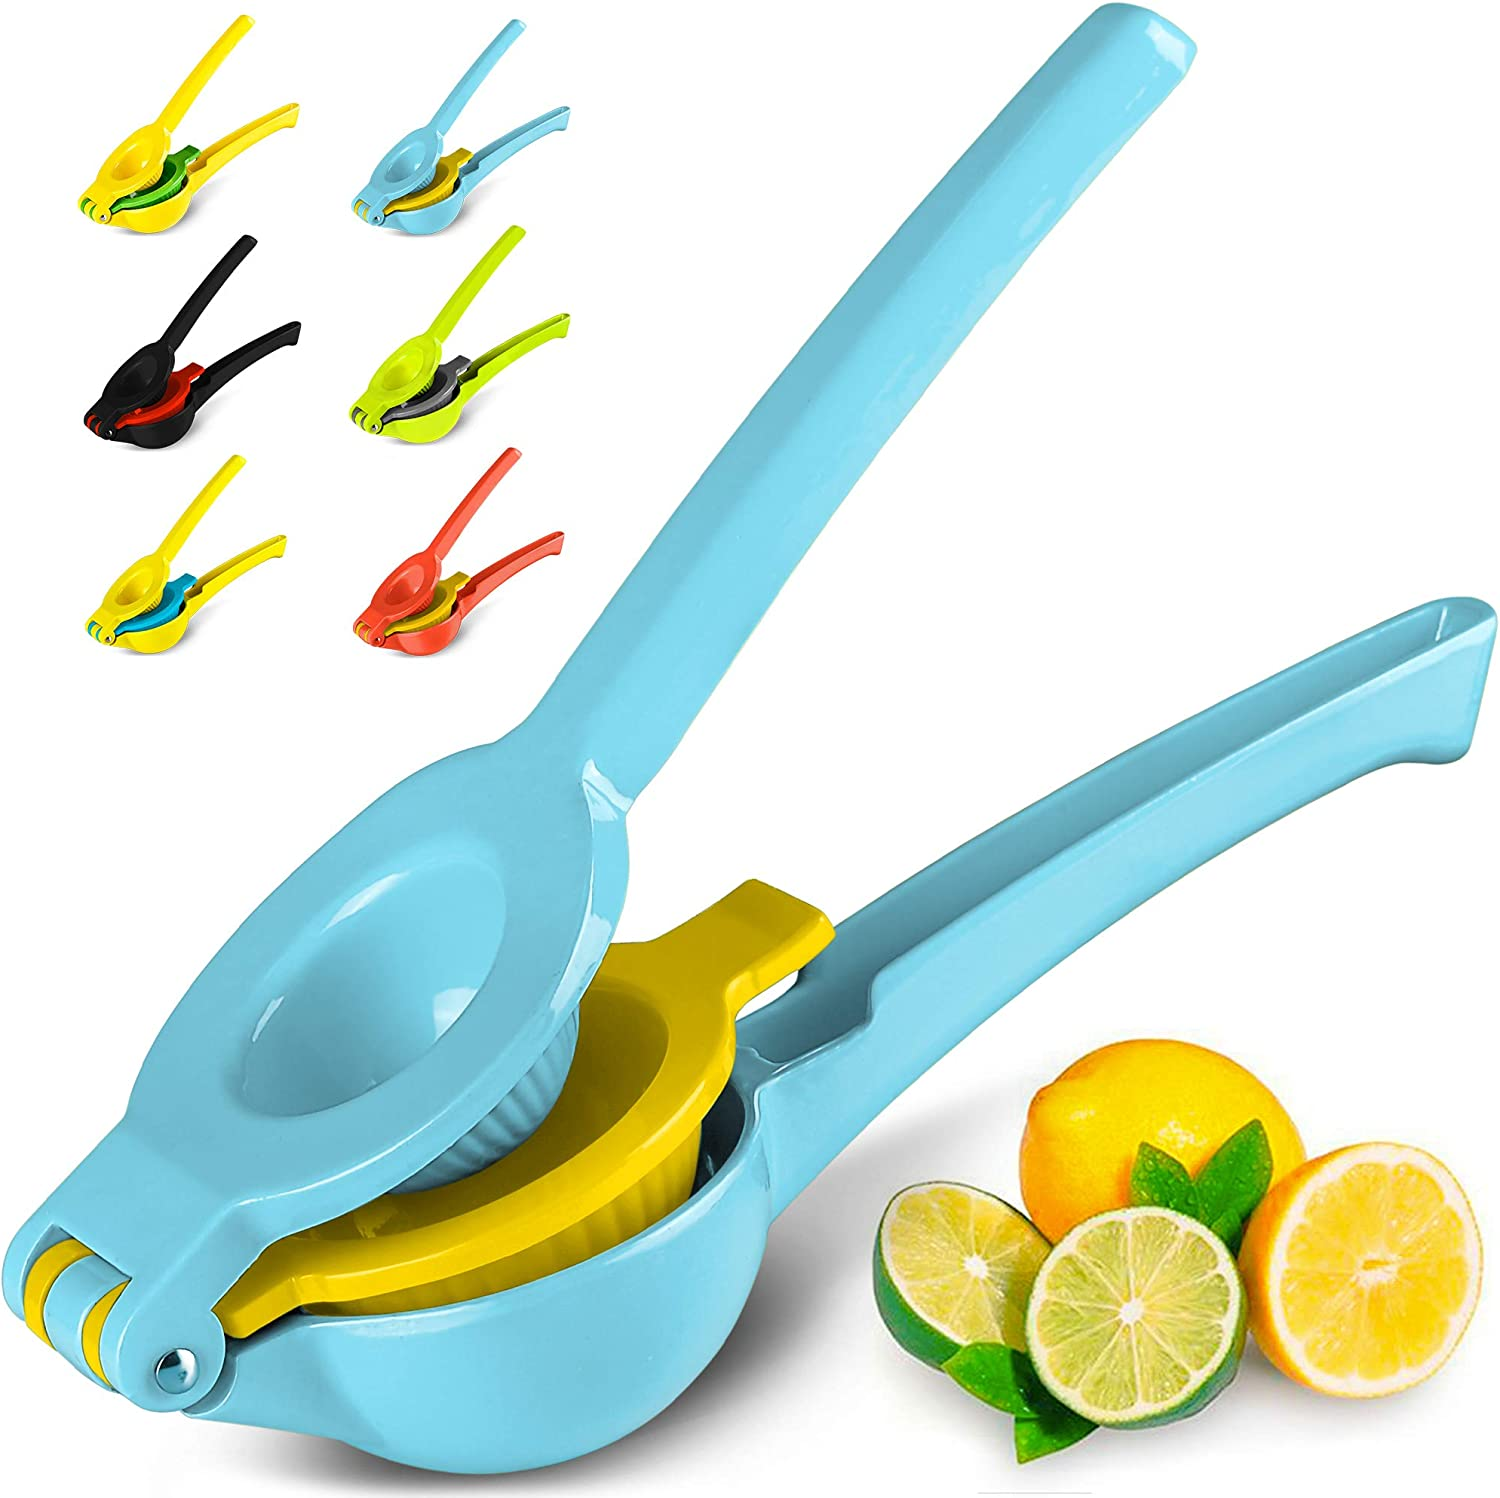 Top Rated Zulay Premium Quality Metal Lemon Lime Squeezer Manual Citrus Press Juicer (Blue Yellow)